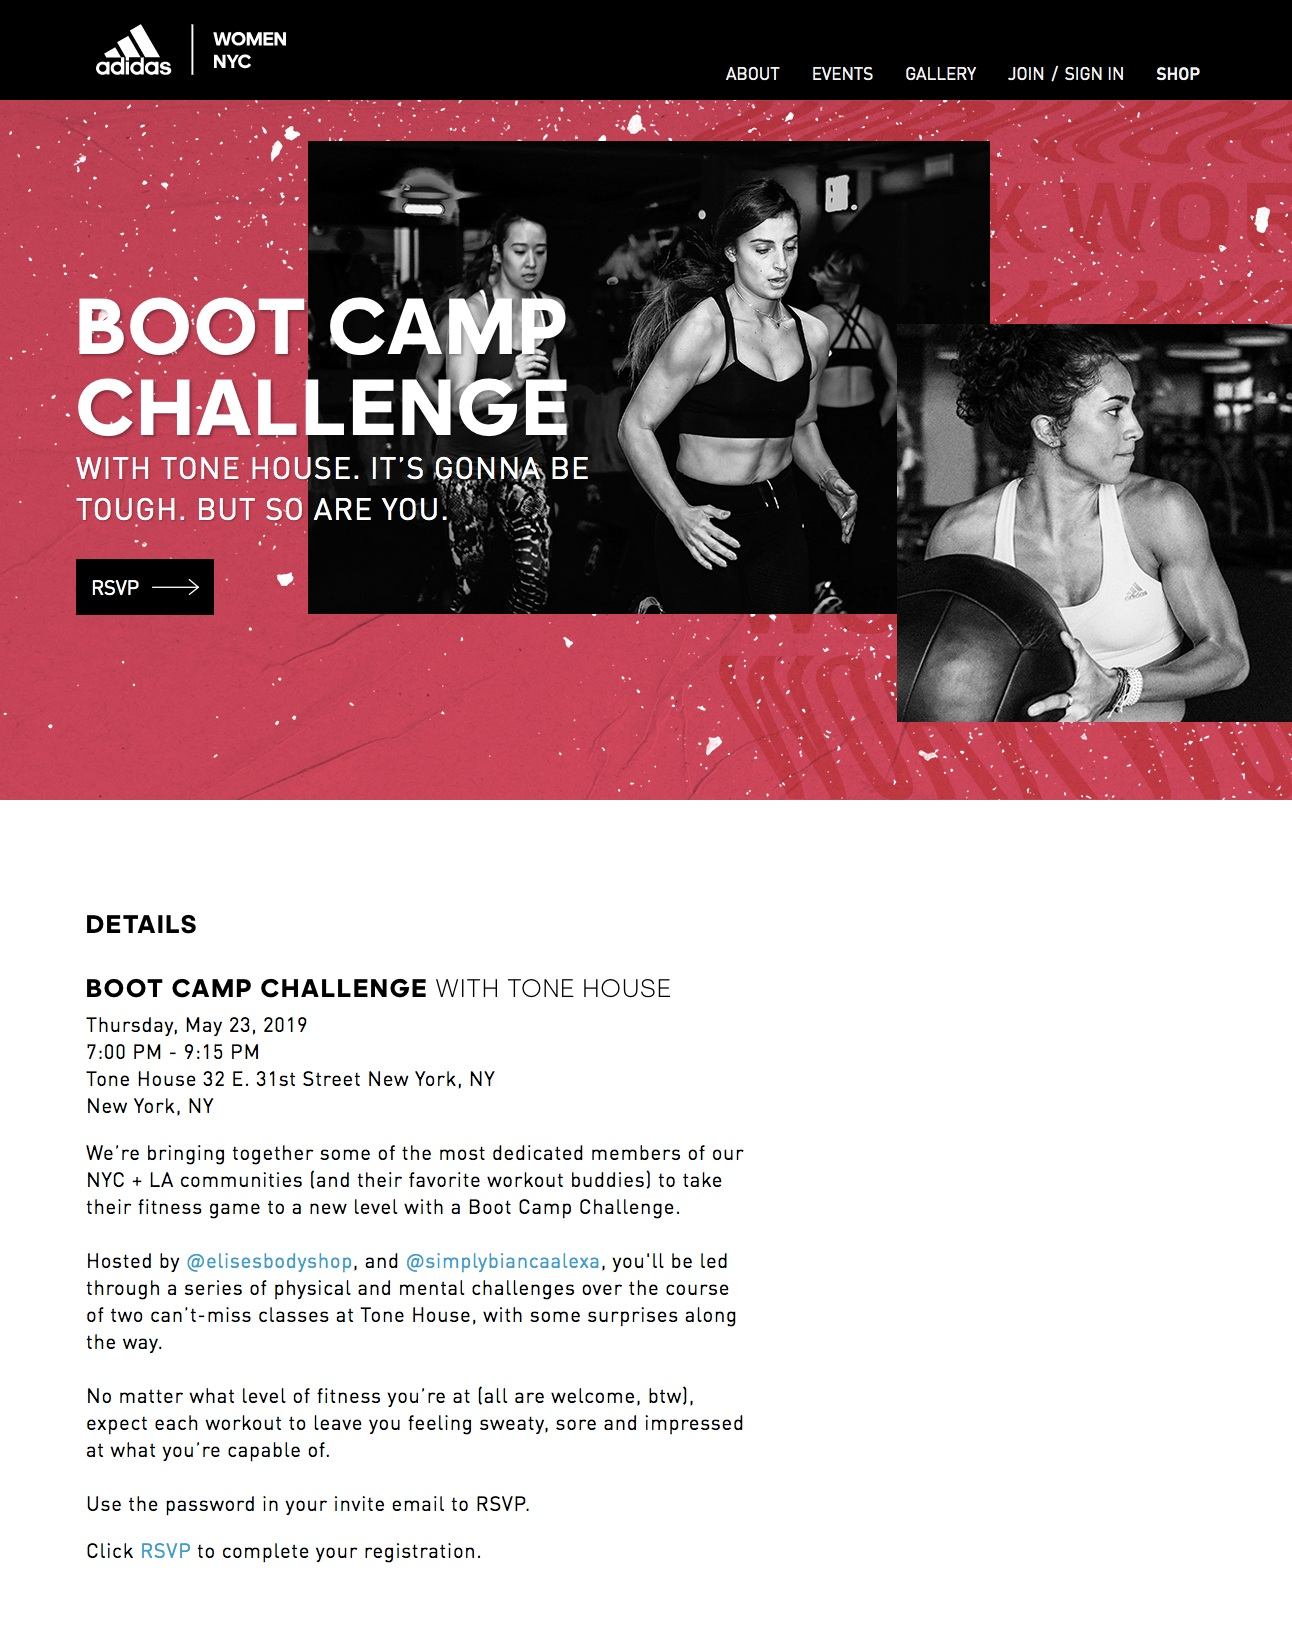 screencapture-adidaswomennyc-event-boot-camp-may-1-2019-05-22-15_22_08.png